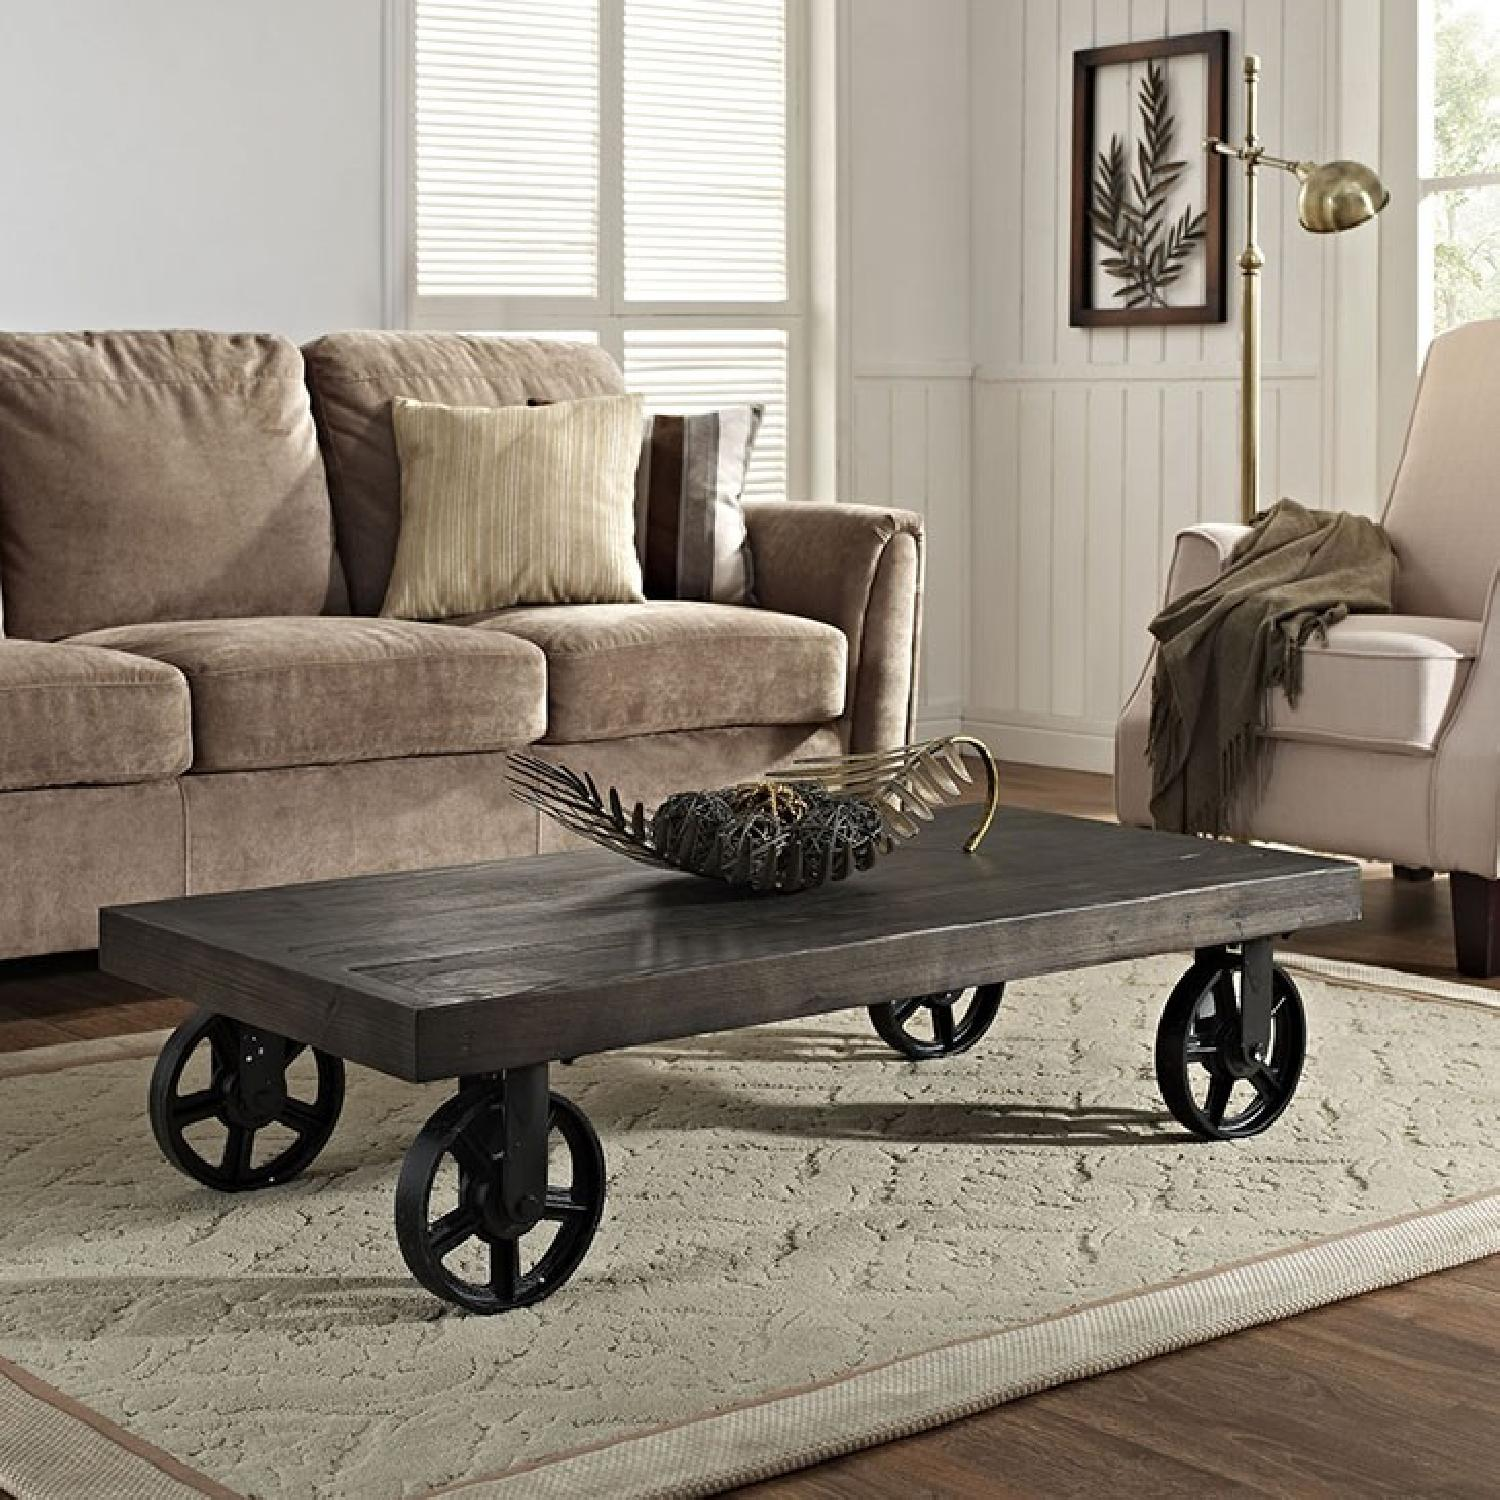 Manhattan Home Design Garrison Wood Coffee Table-2